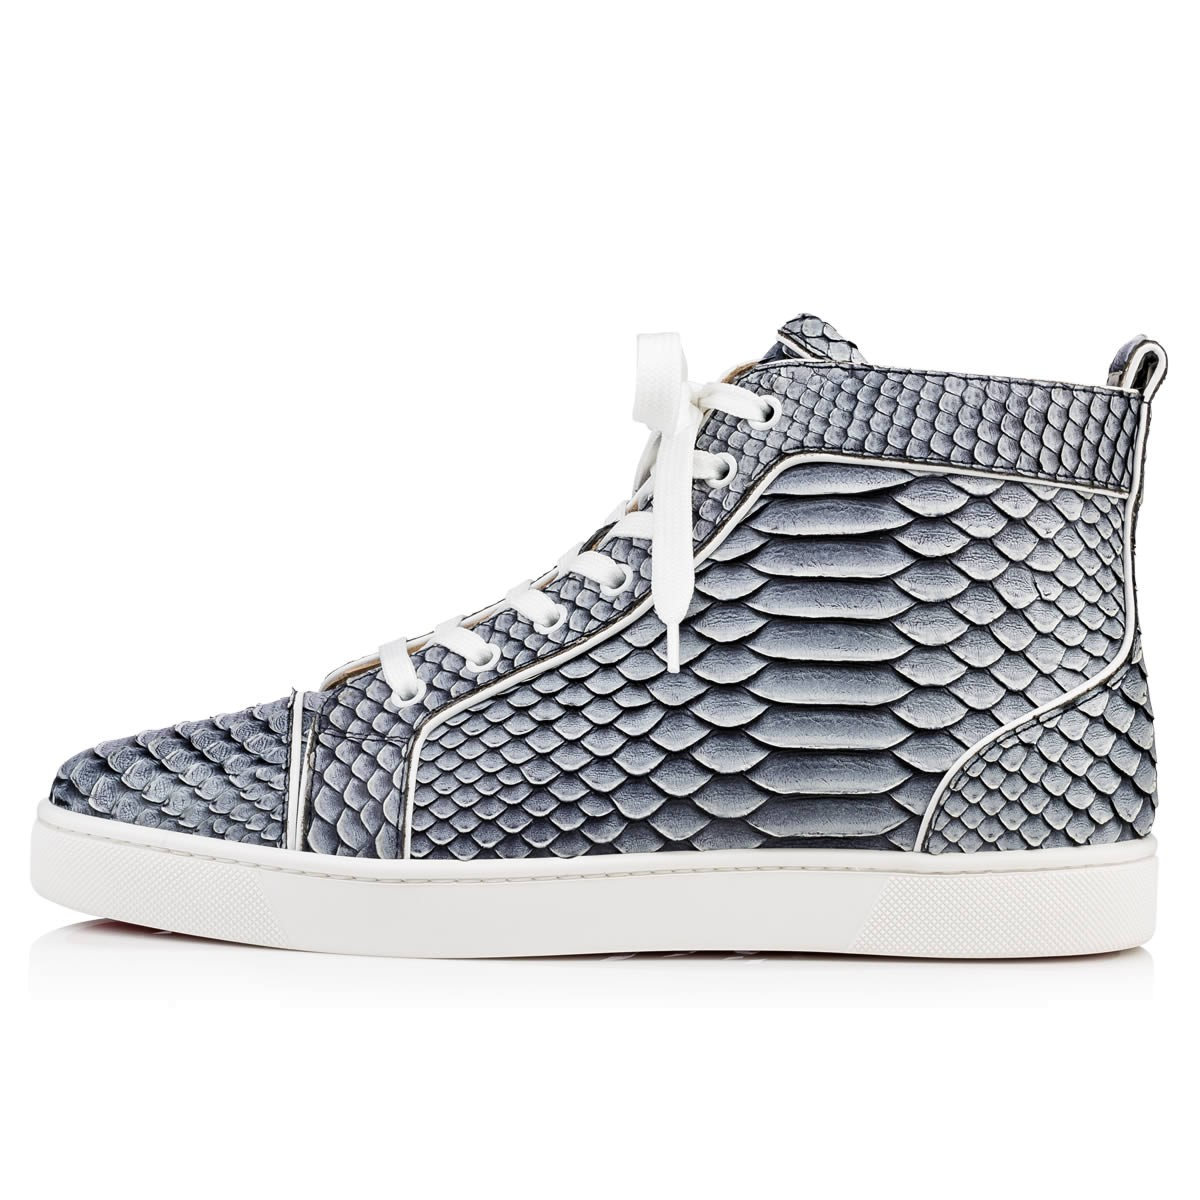 cheap louboutin shoes knockoffs - Christian louboutin Louis Frozen Python High-Top Sneakers in Gray ...